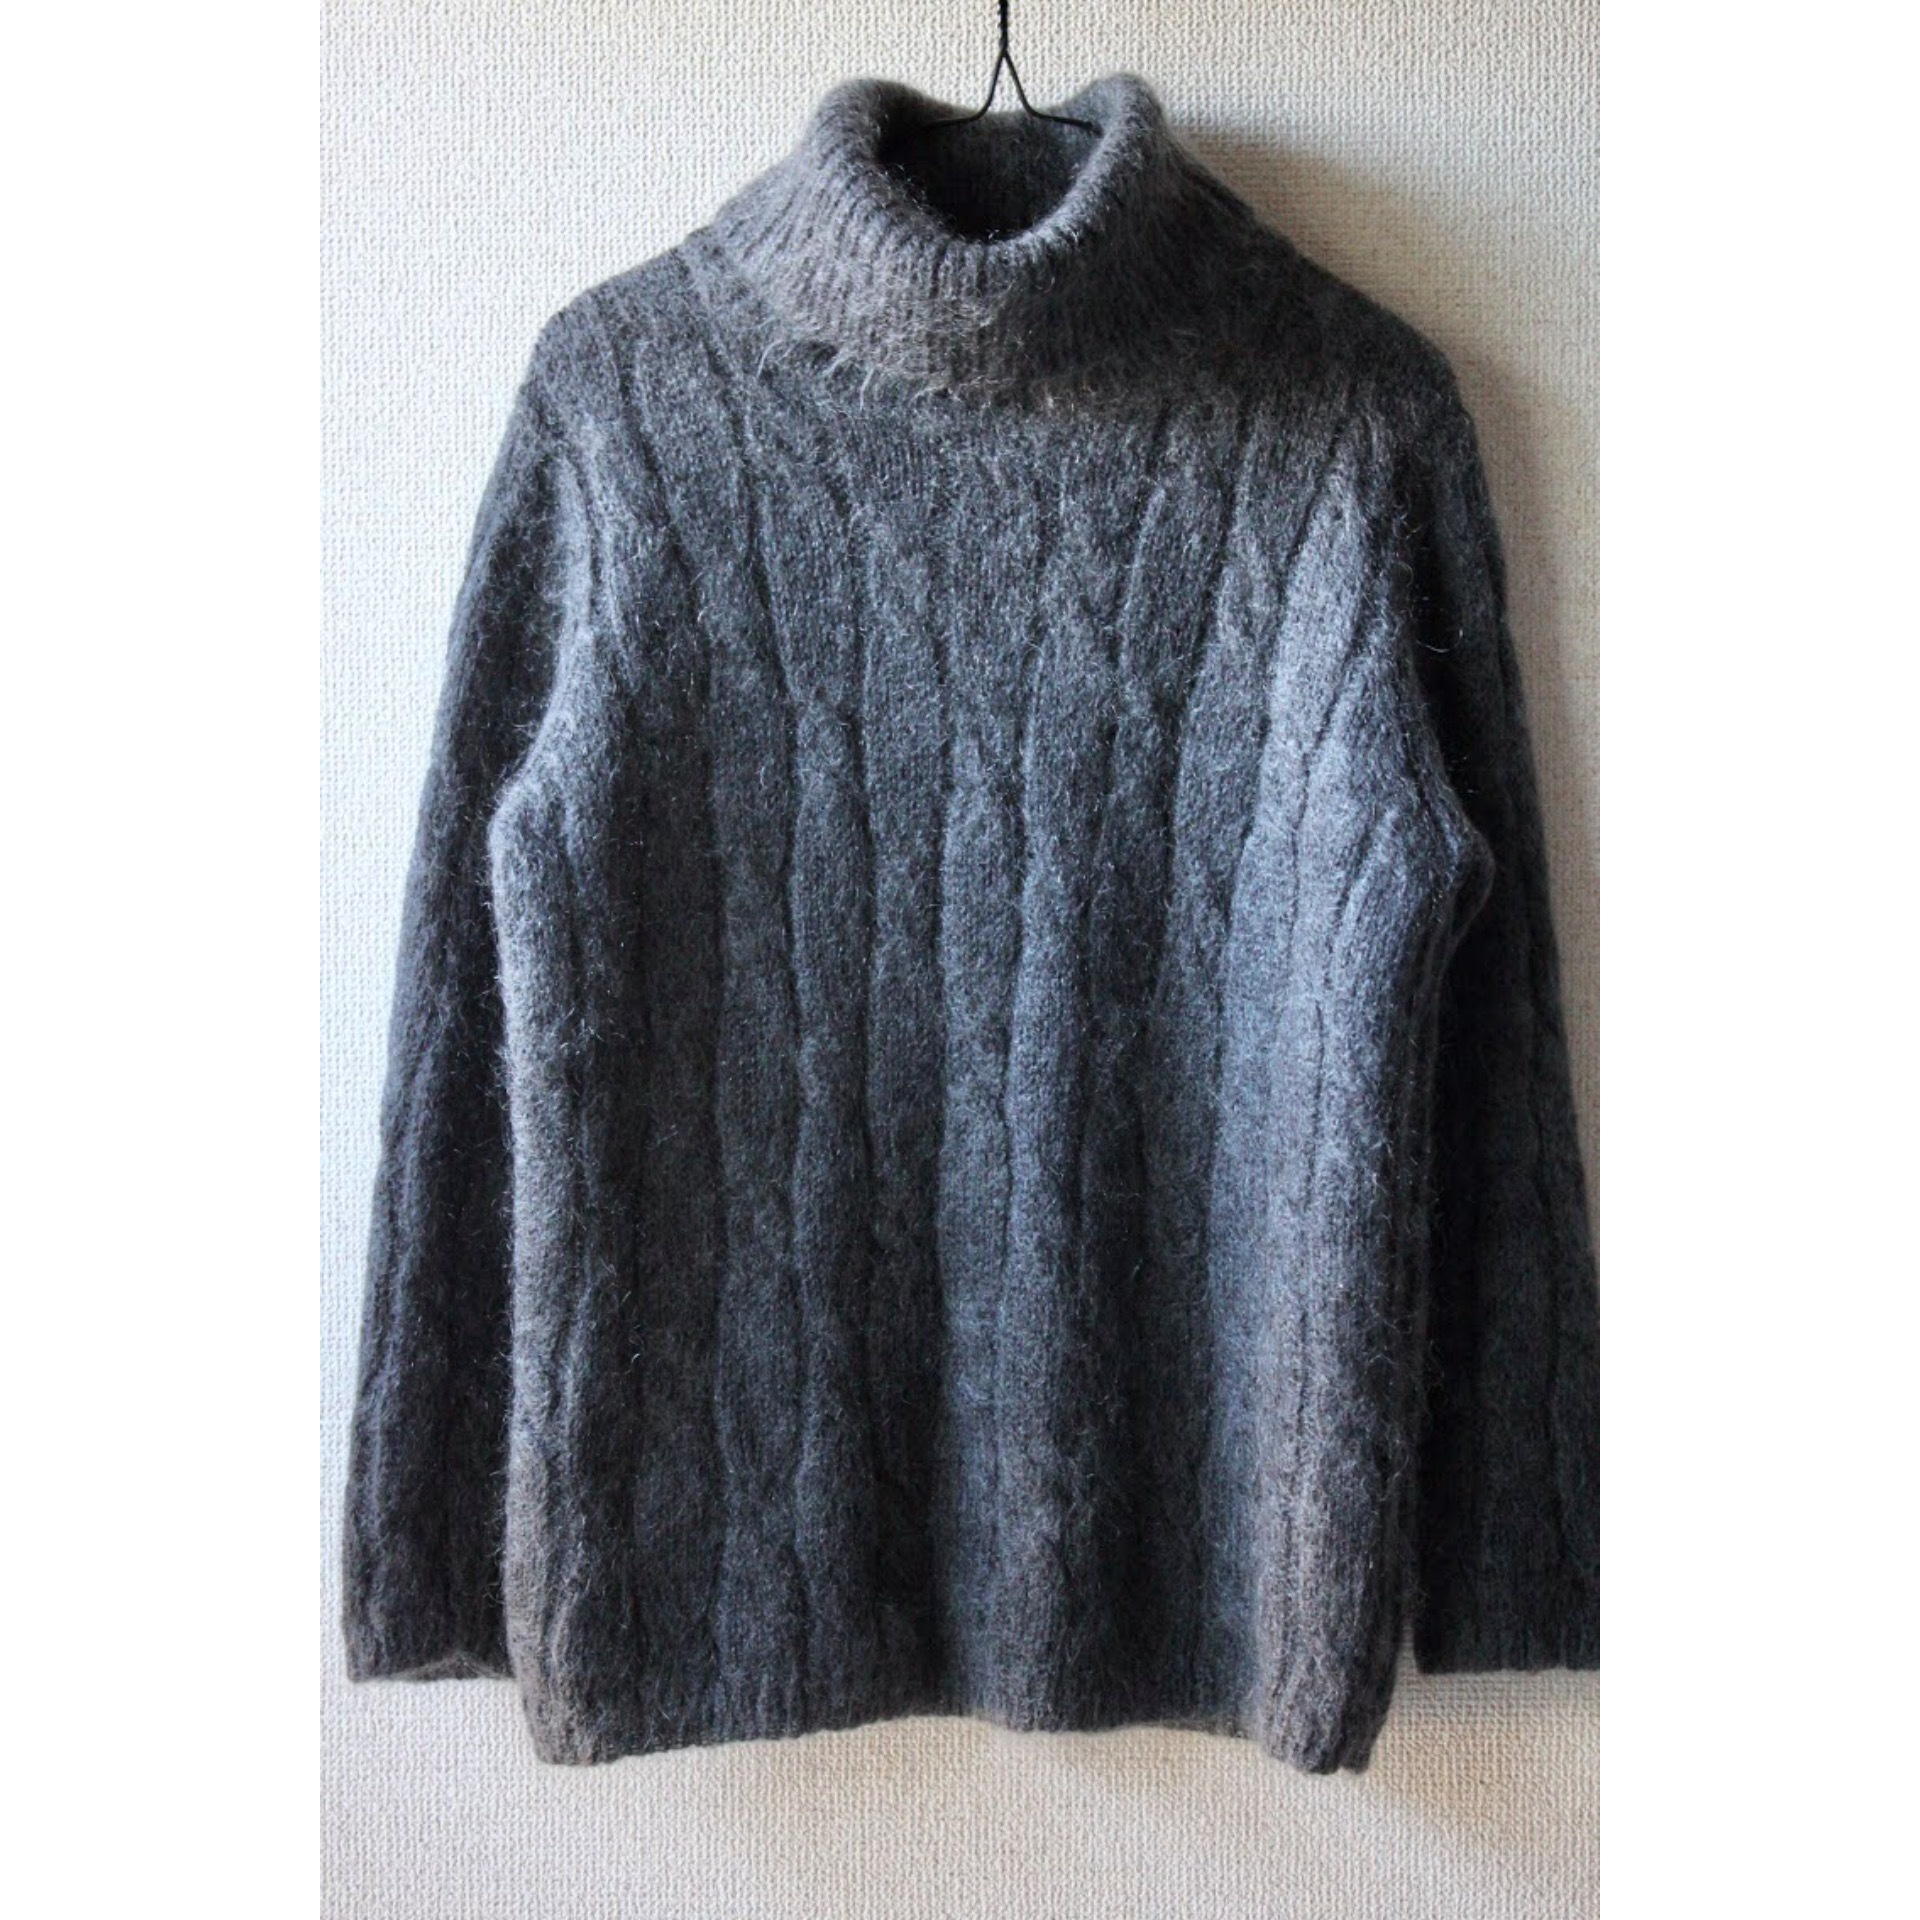 Vintage mohair mixed sweater